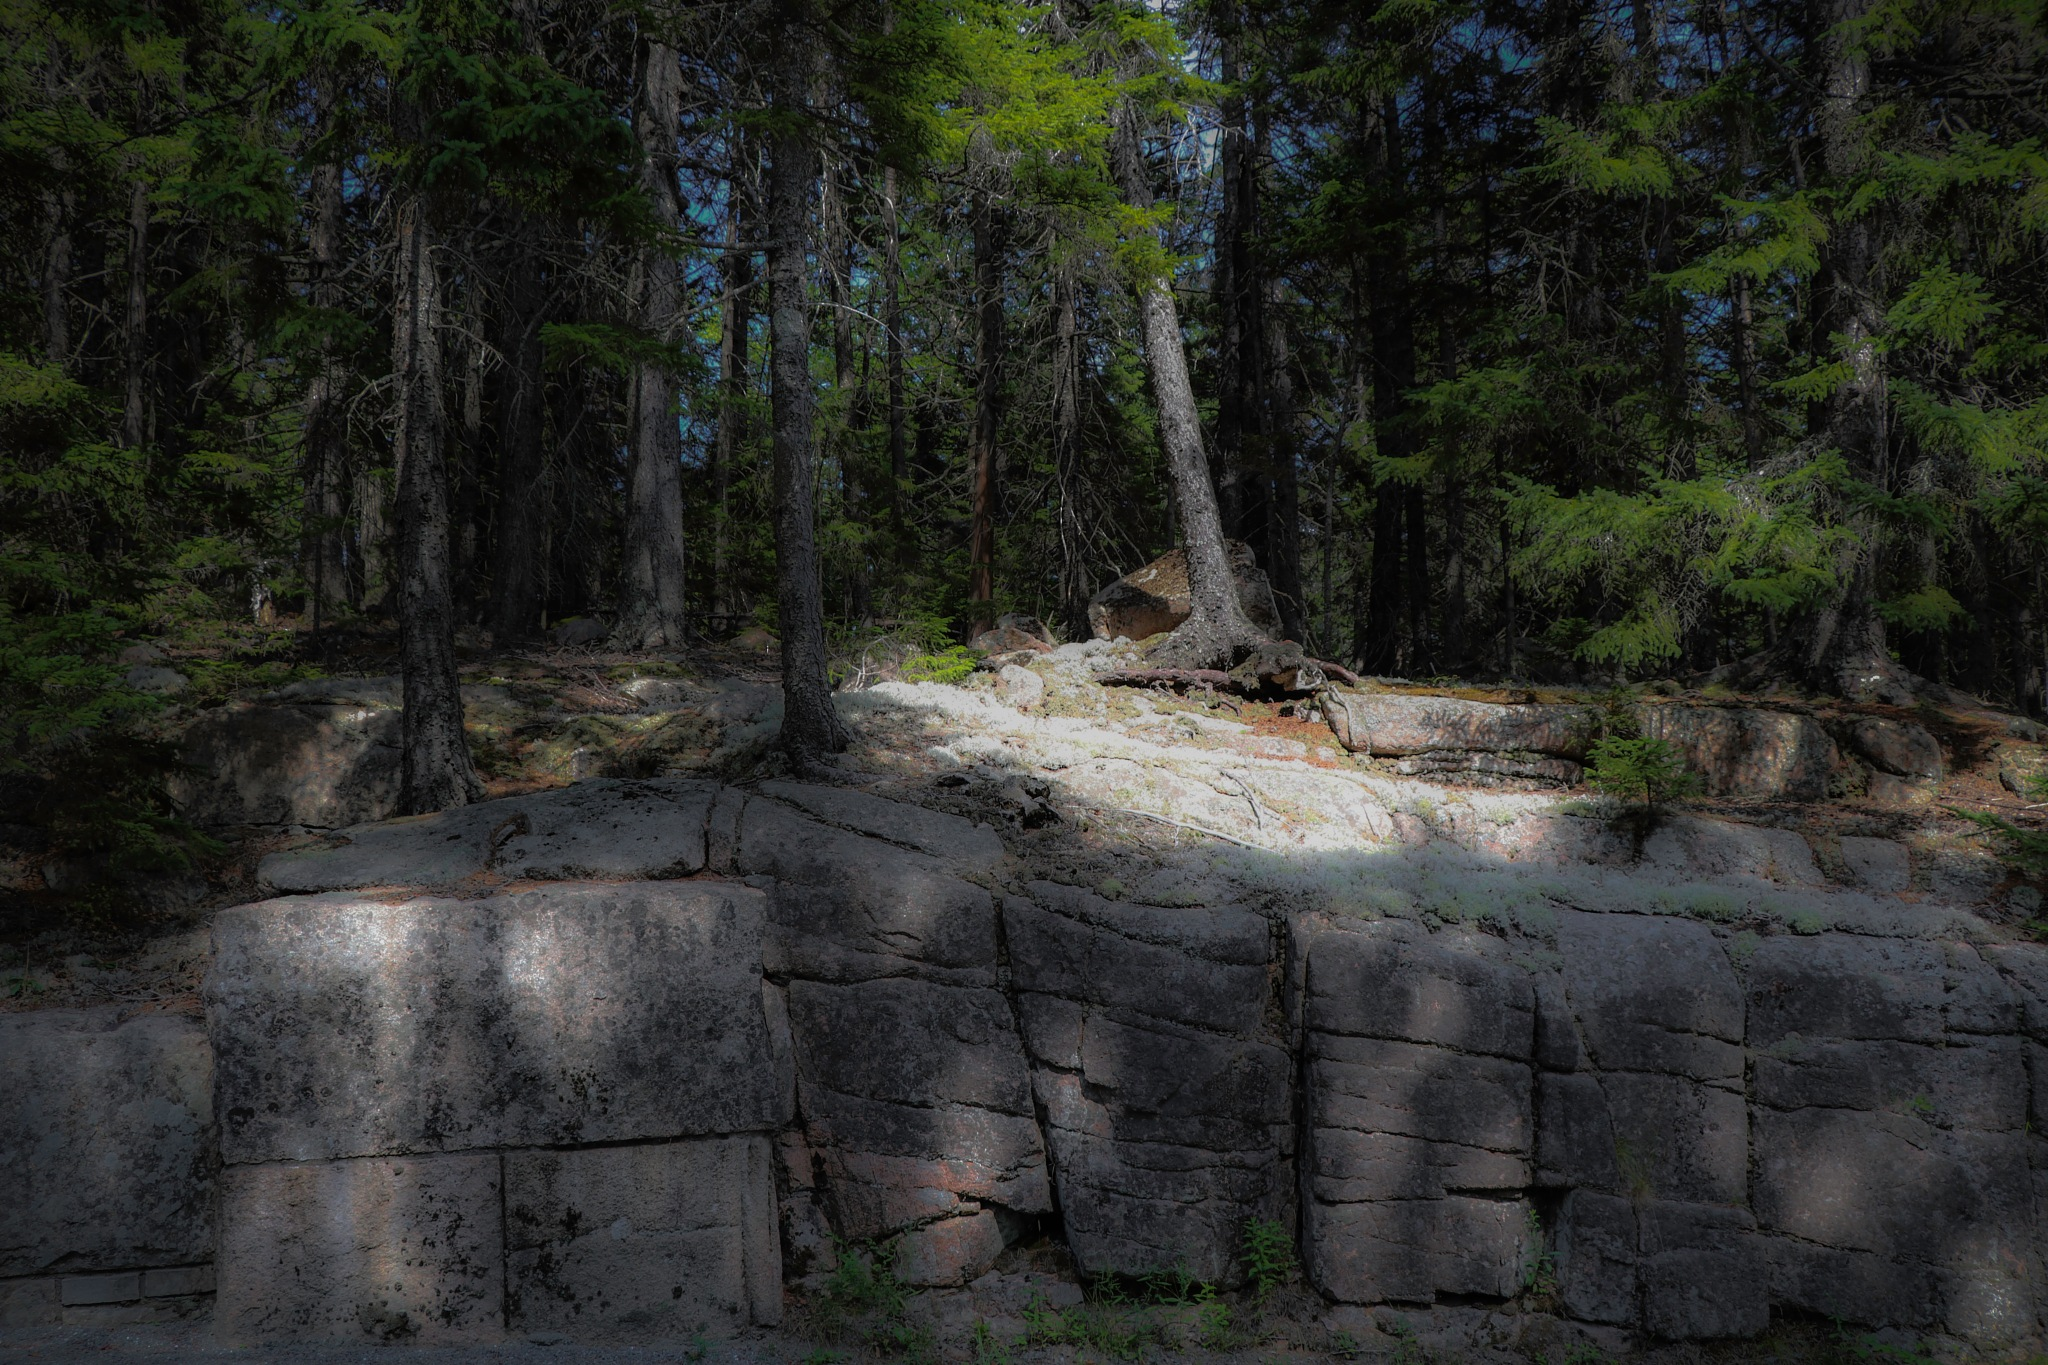 Forest out of stone by Mark Hootman